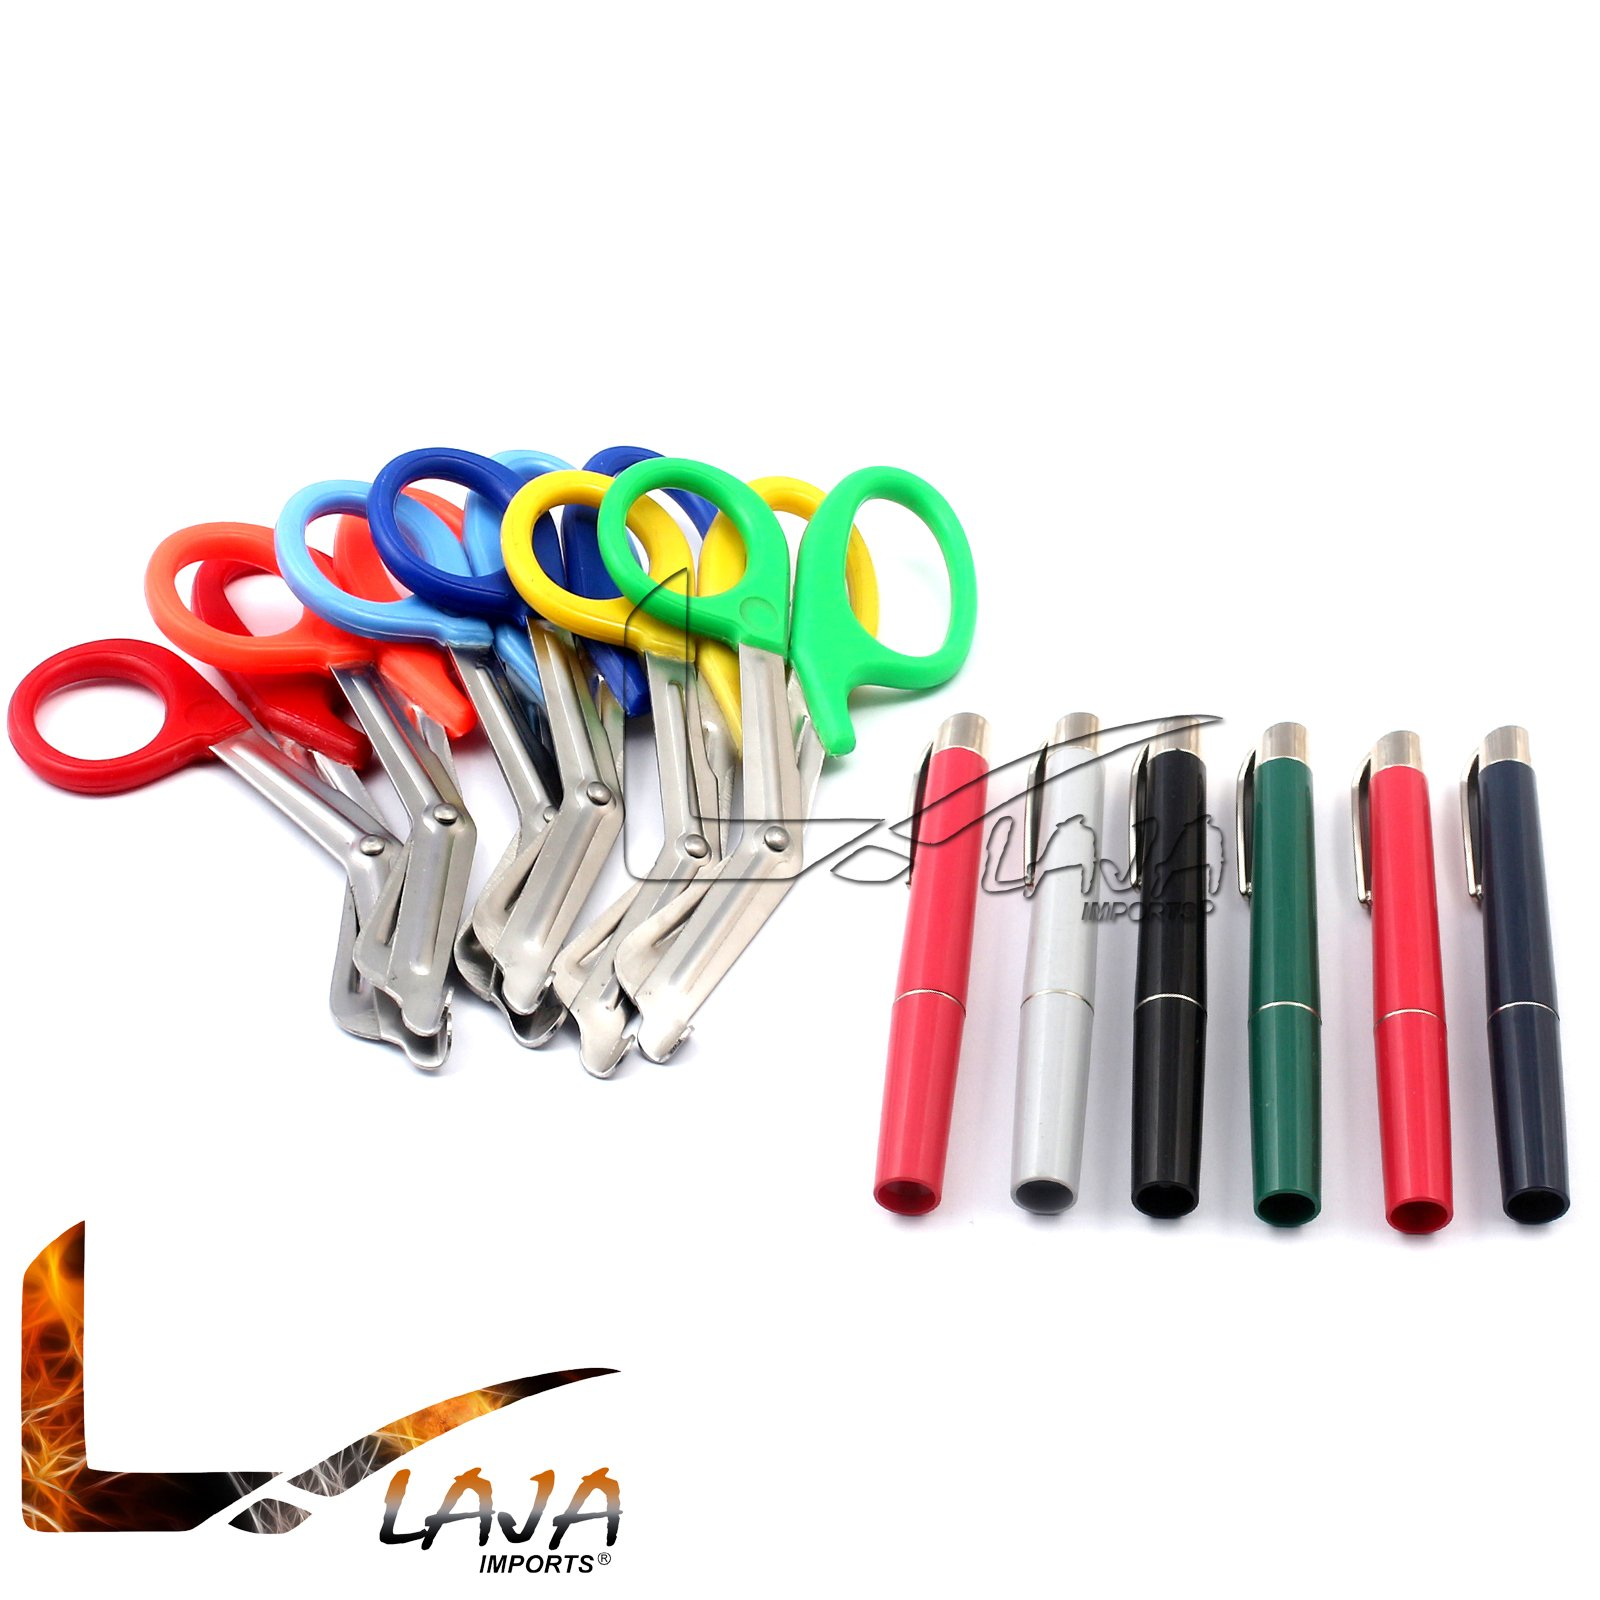 LAJA IMPORTS ASSORTED RAINBOW 6 PCS PINK EMT FIRST RESPONDER 7.5'' SHEARS + ASSORTED RAINBOW PENLIGHTS - IDEAL GIFT FOR NURSES, EMT, FIREFIGHTER, POLICE AND MILITARY